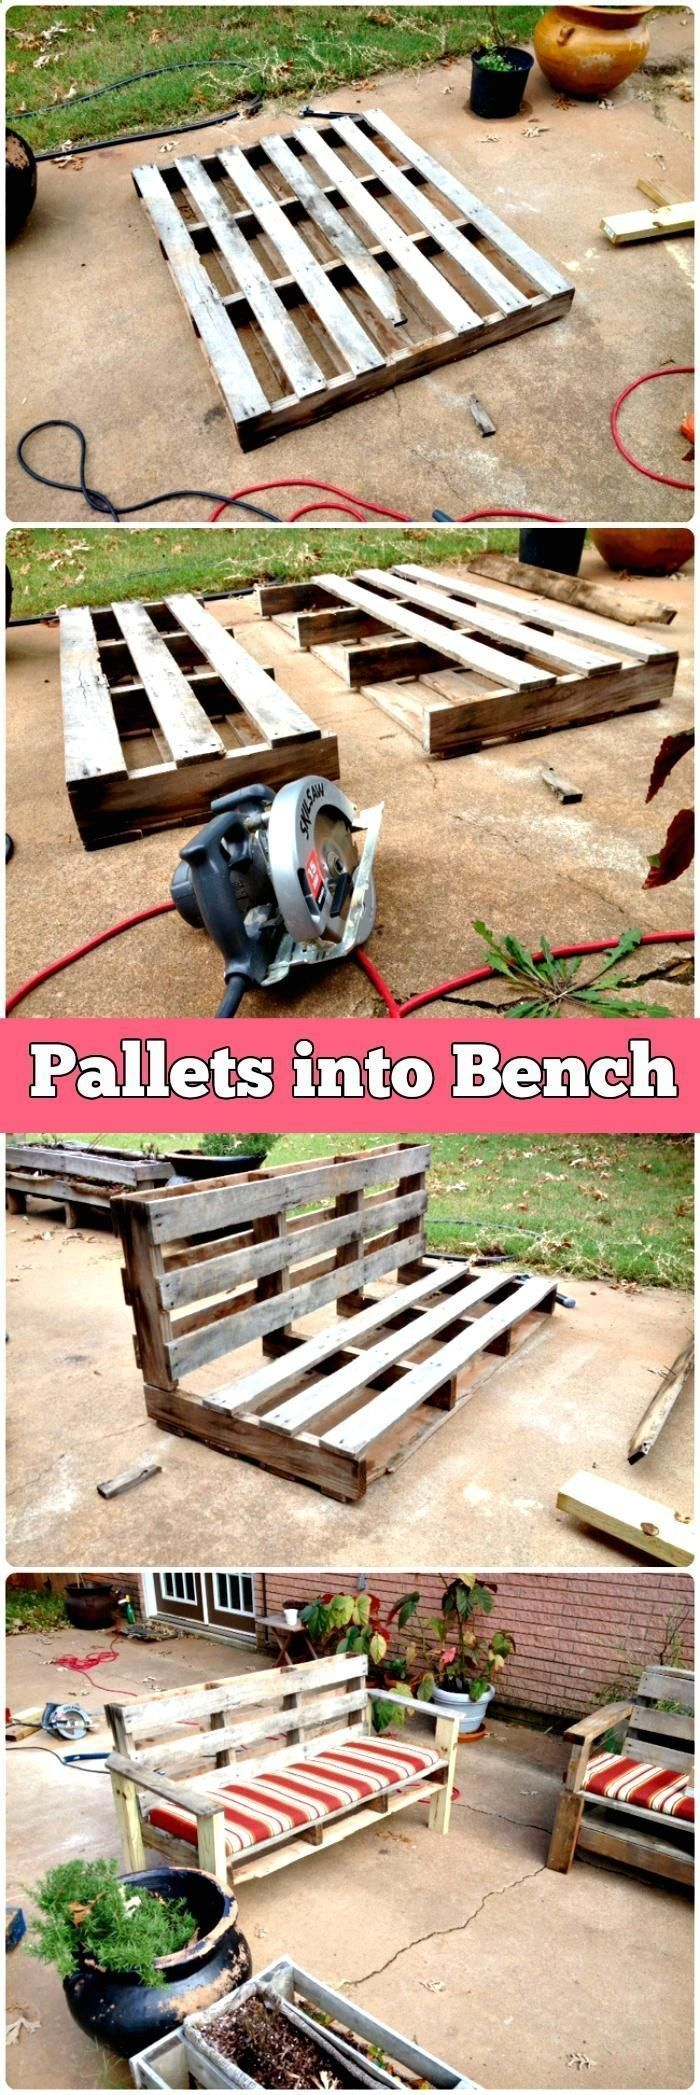 5 Easy Step DIY Transformation – Pallet into Outdoor Patio Bench - 150 Best DIY Pallet Projects and Pallet Furniture Crafts - Page 30 of 75 - DIY  Crafts #palletfurniturebench #palletfurniturepatio